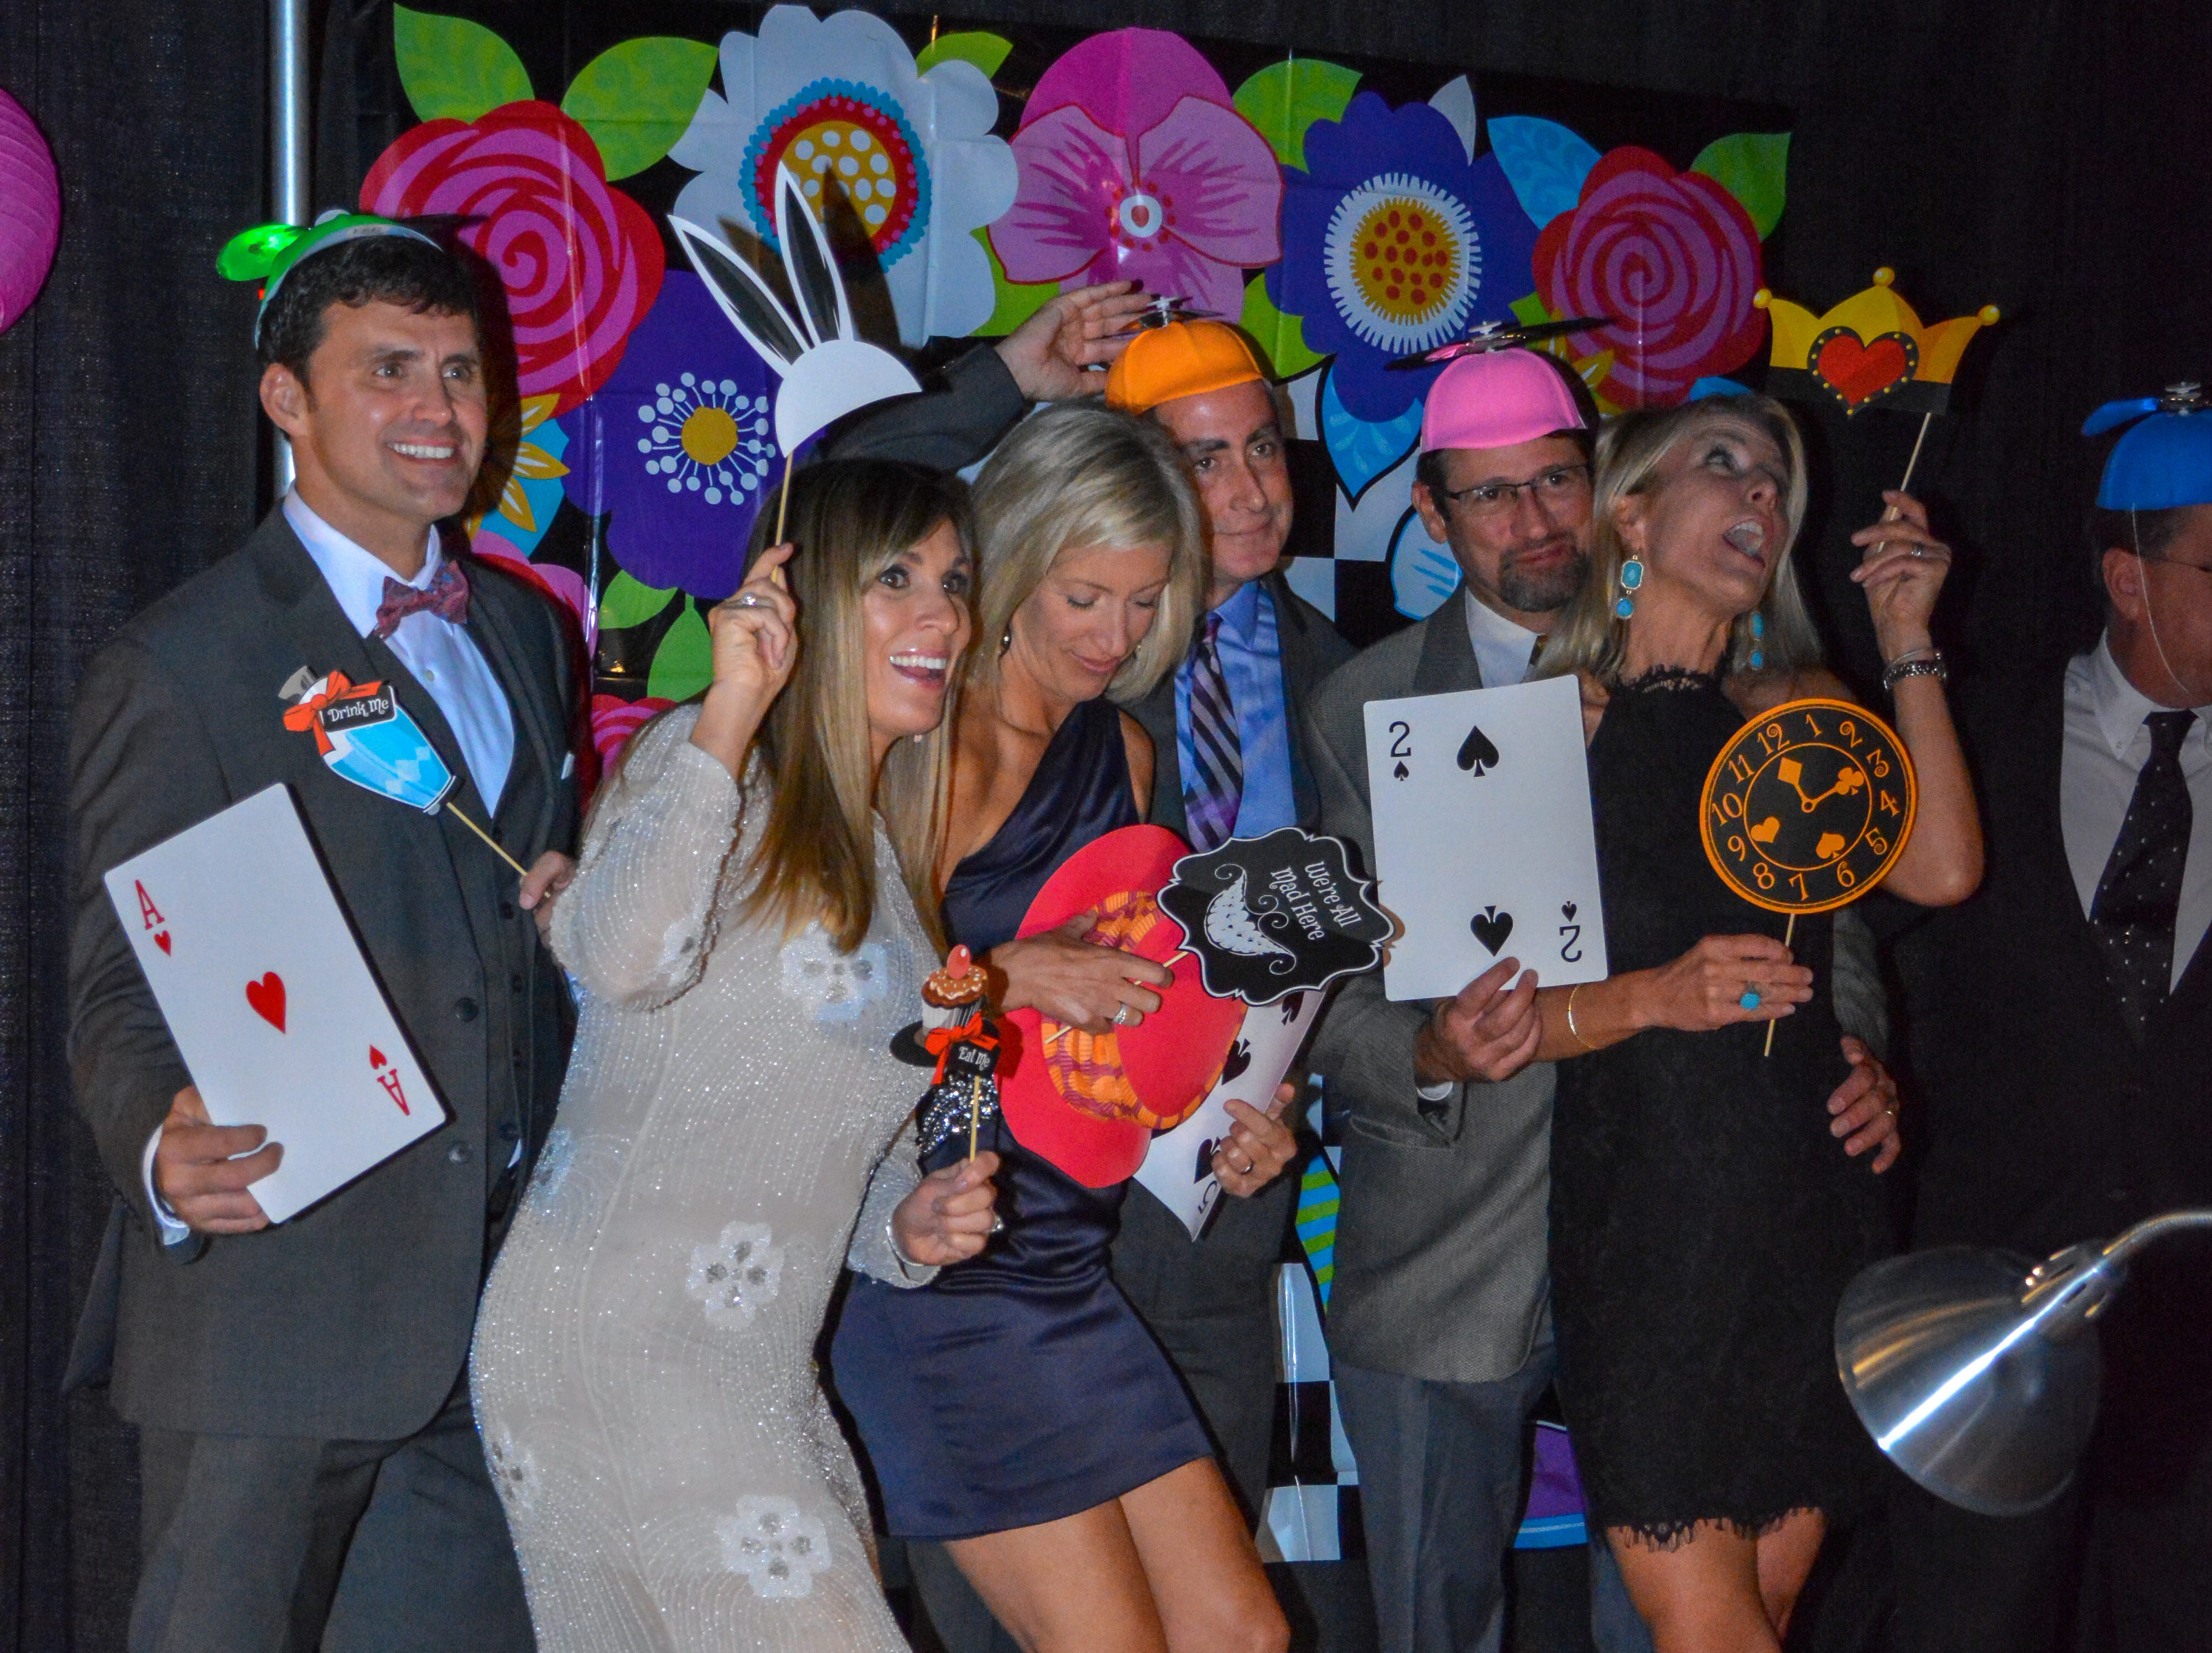 """Guests at the Minds in Motion Museum """"A Wonderland Adventure Gala"""" have fun on Nov. 3, 2018, at the Wicomico Youth & Civic Center in Salisbury, Maryland."""